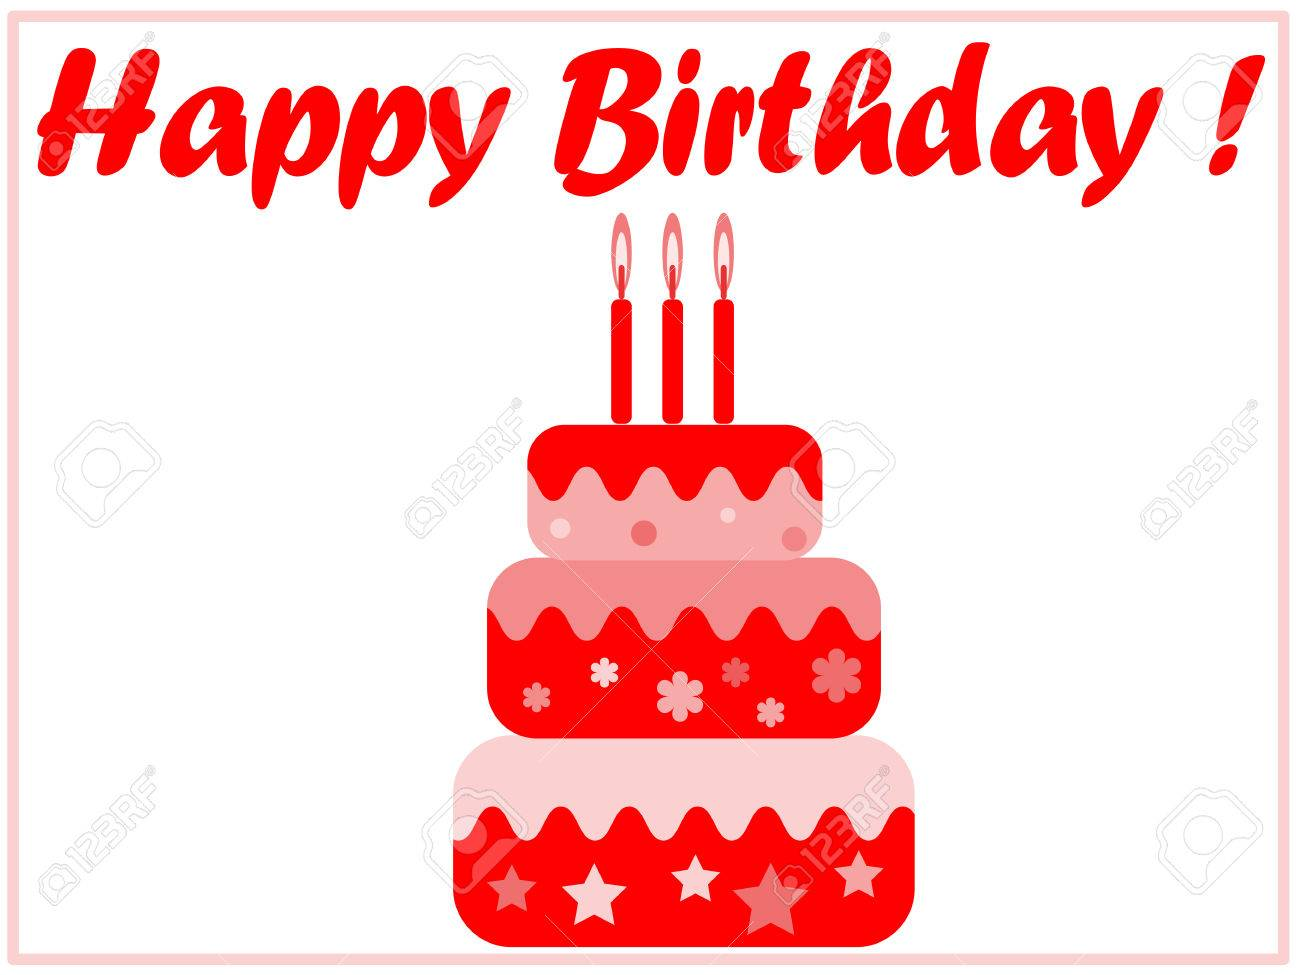 Birthday Card In The Red Colors For Girl Royalty Free Cliparts